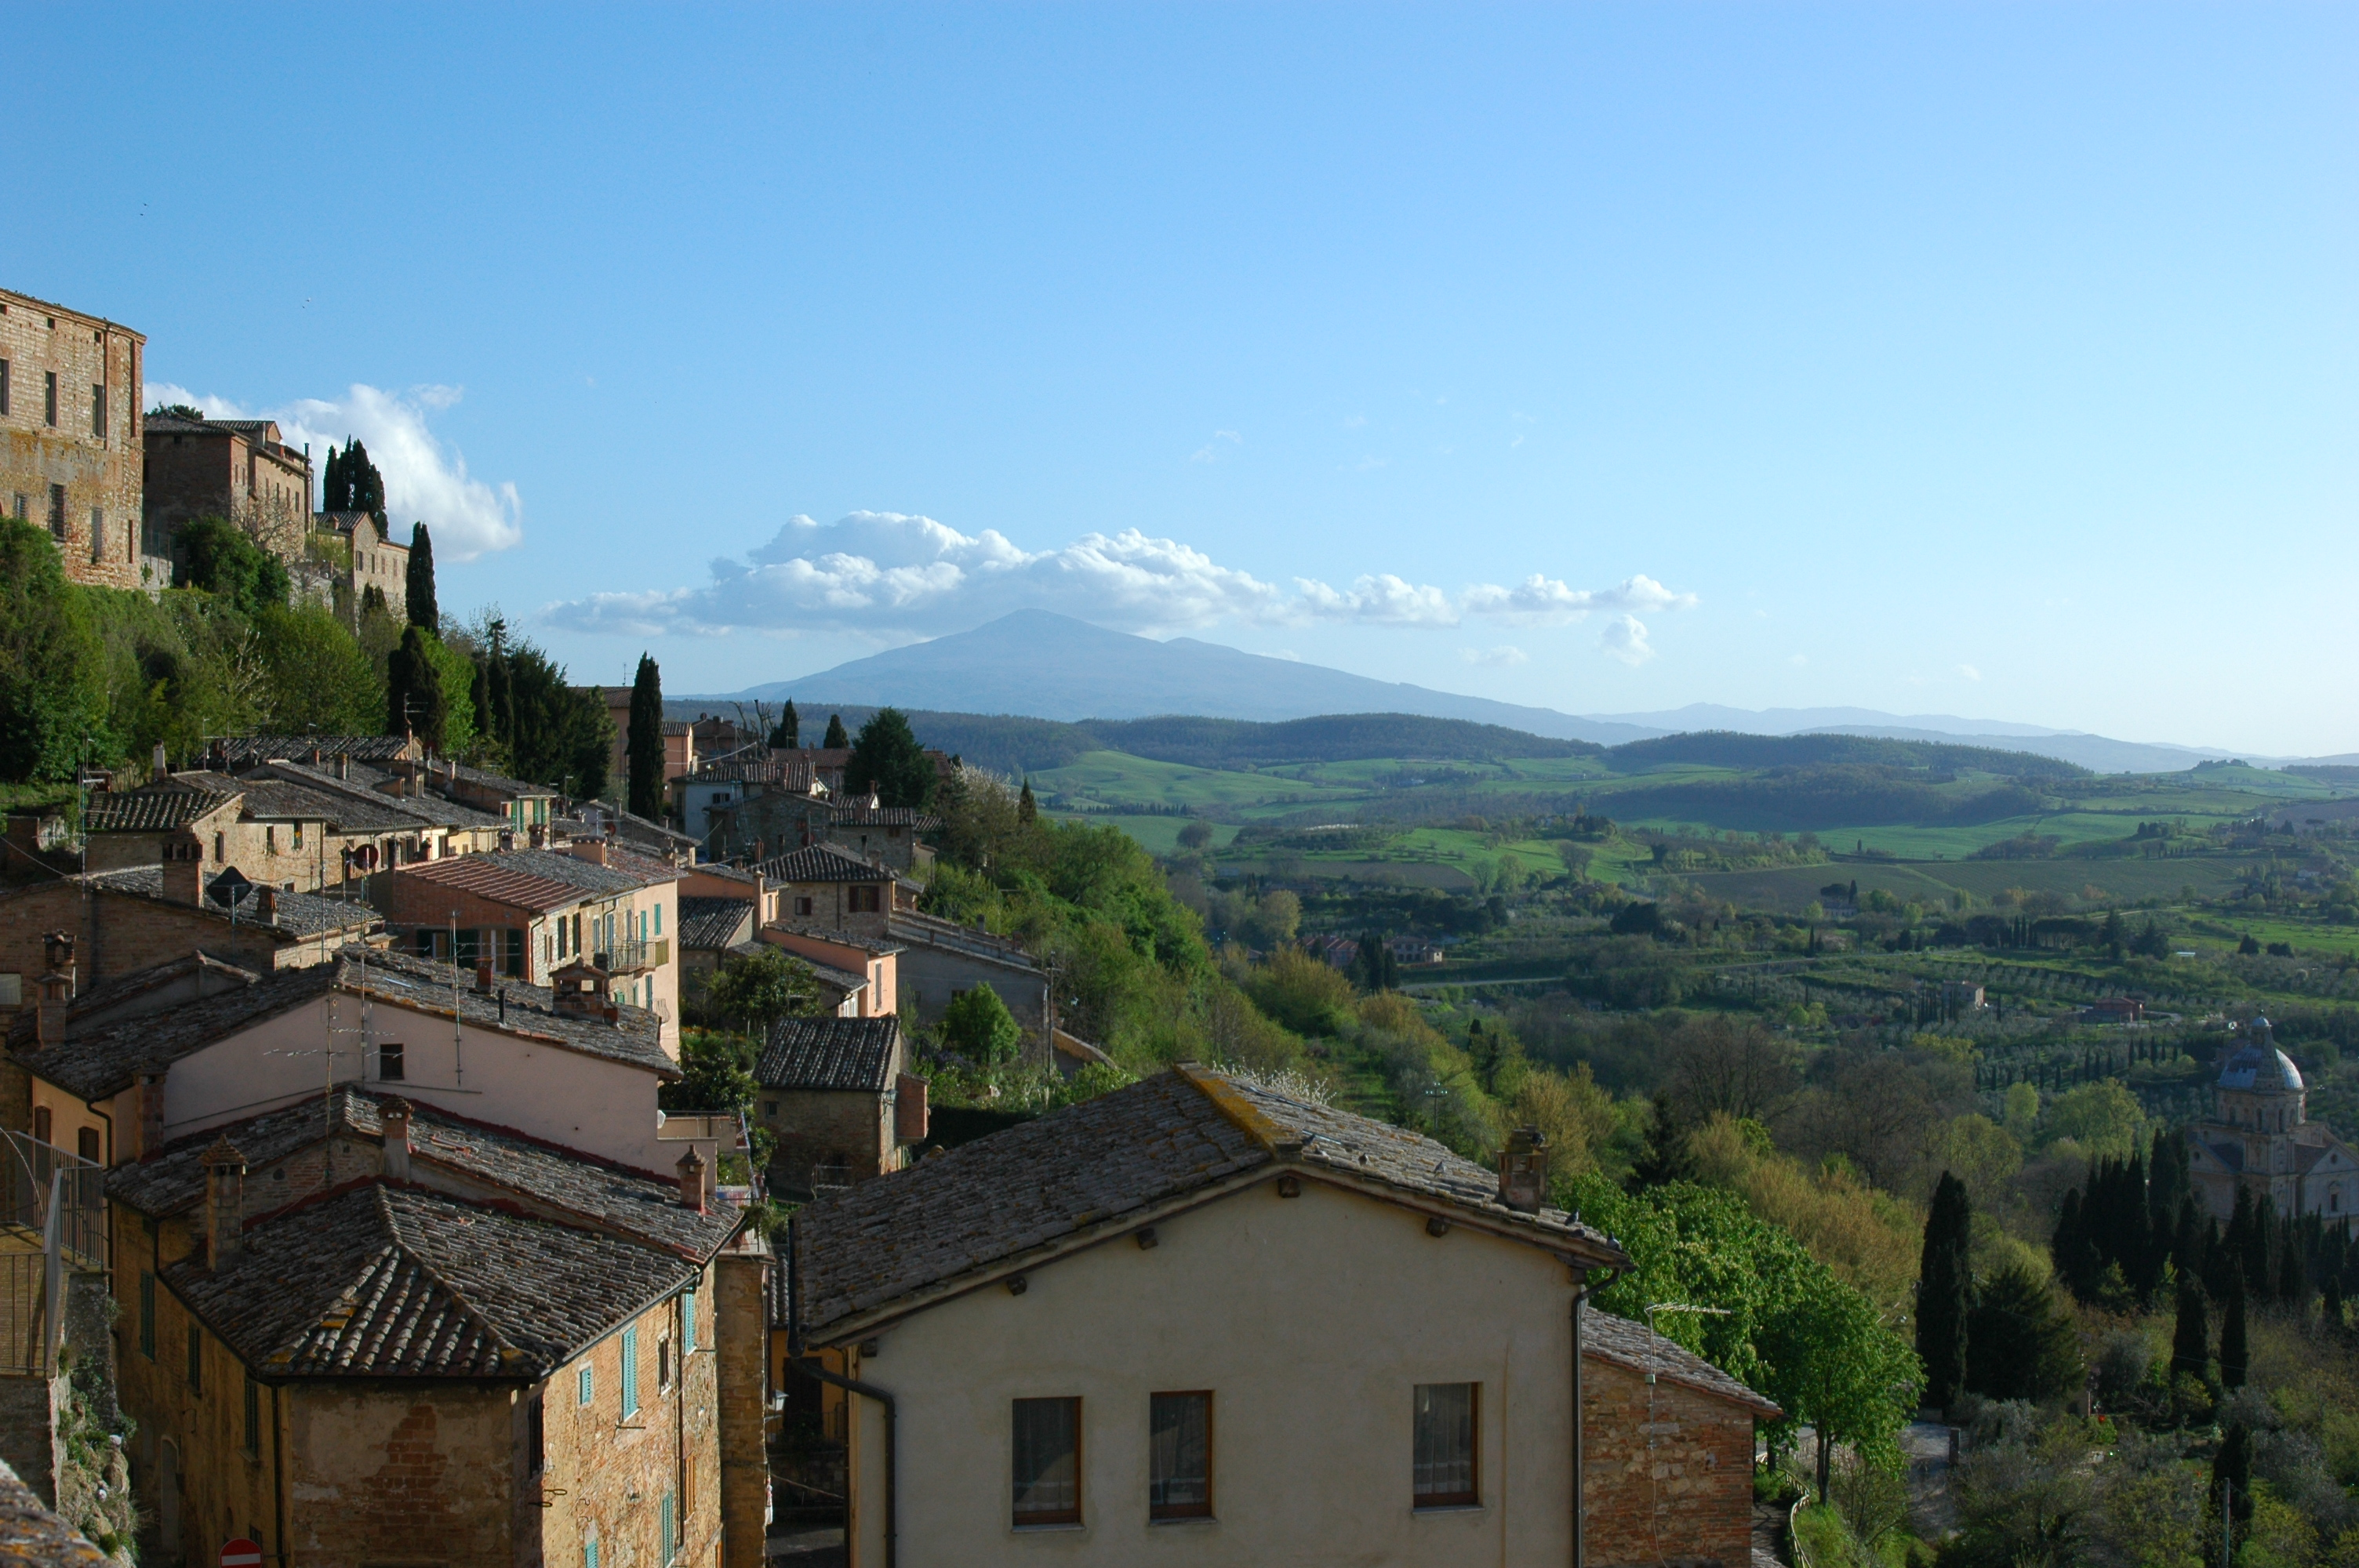 View from Montepulciano, Italy